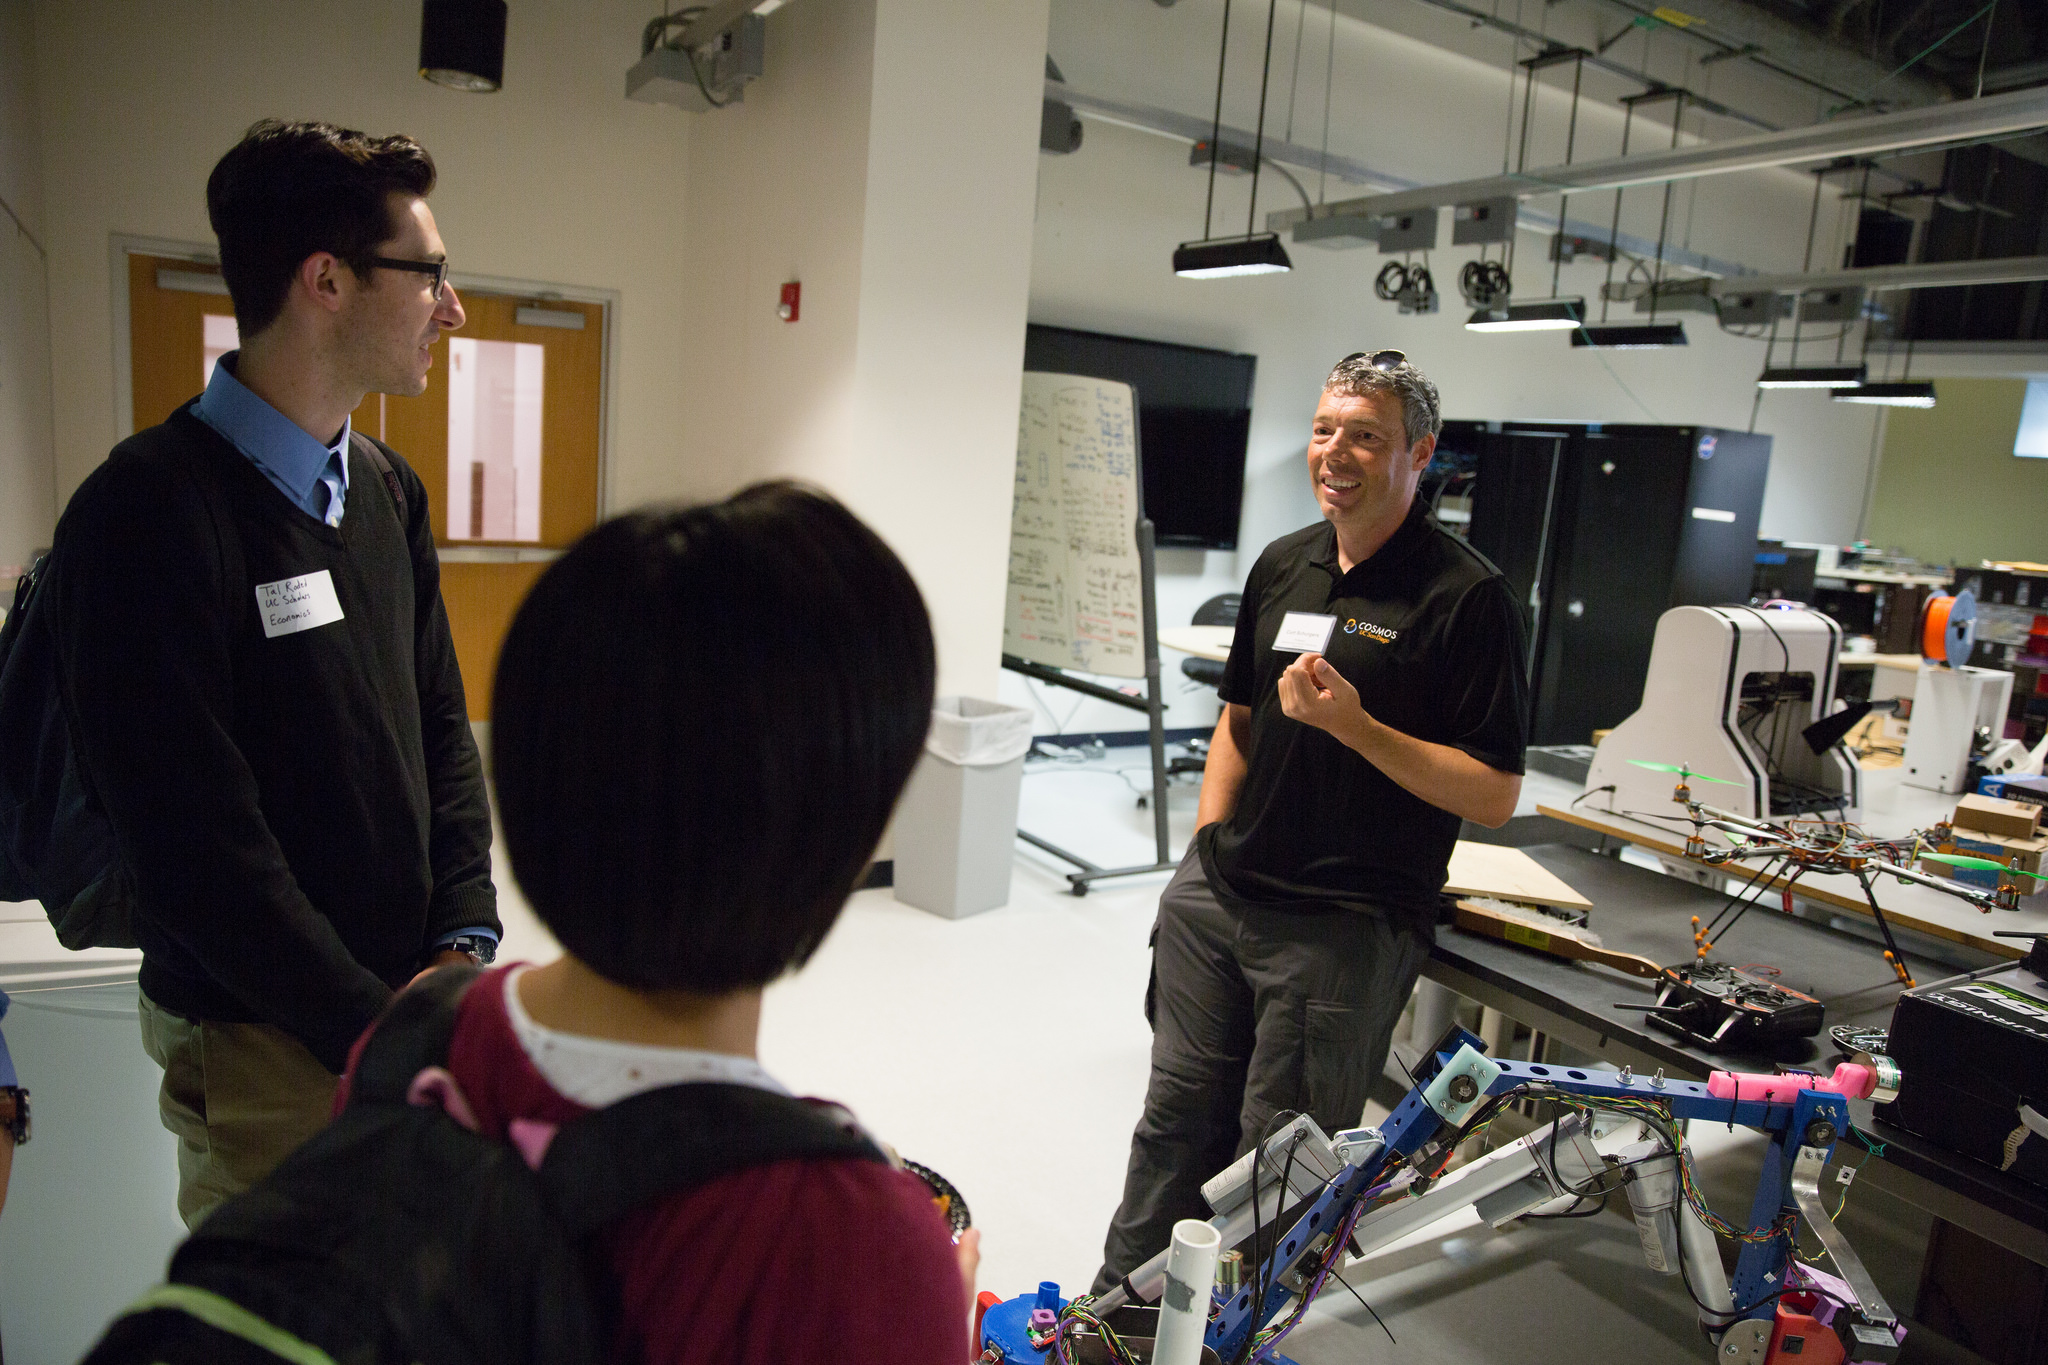 Curt Schurgers answers questions from students during a tour of the QI Prototyping Lab